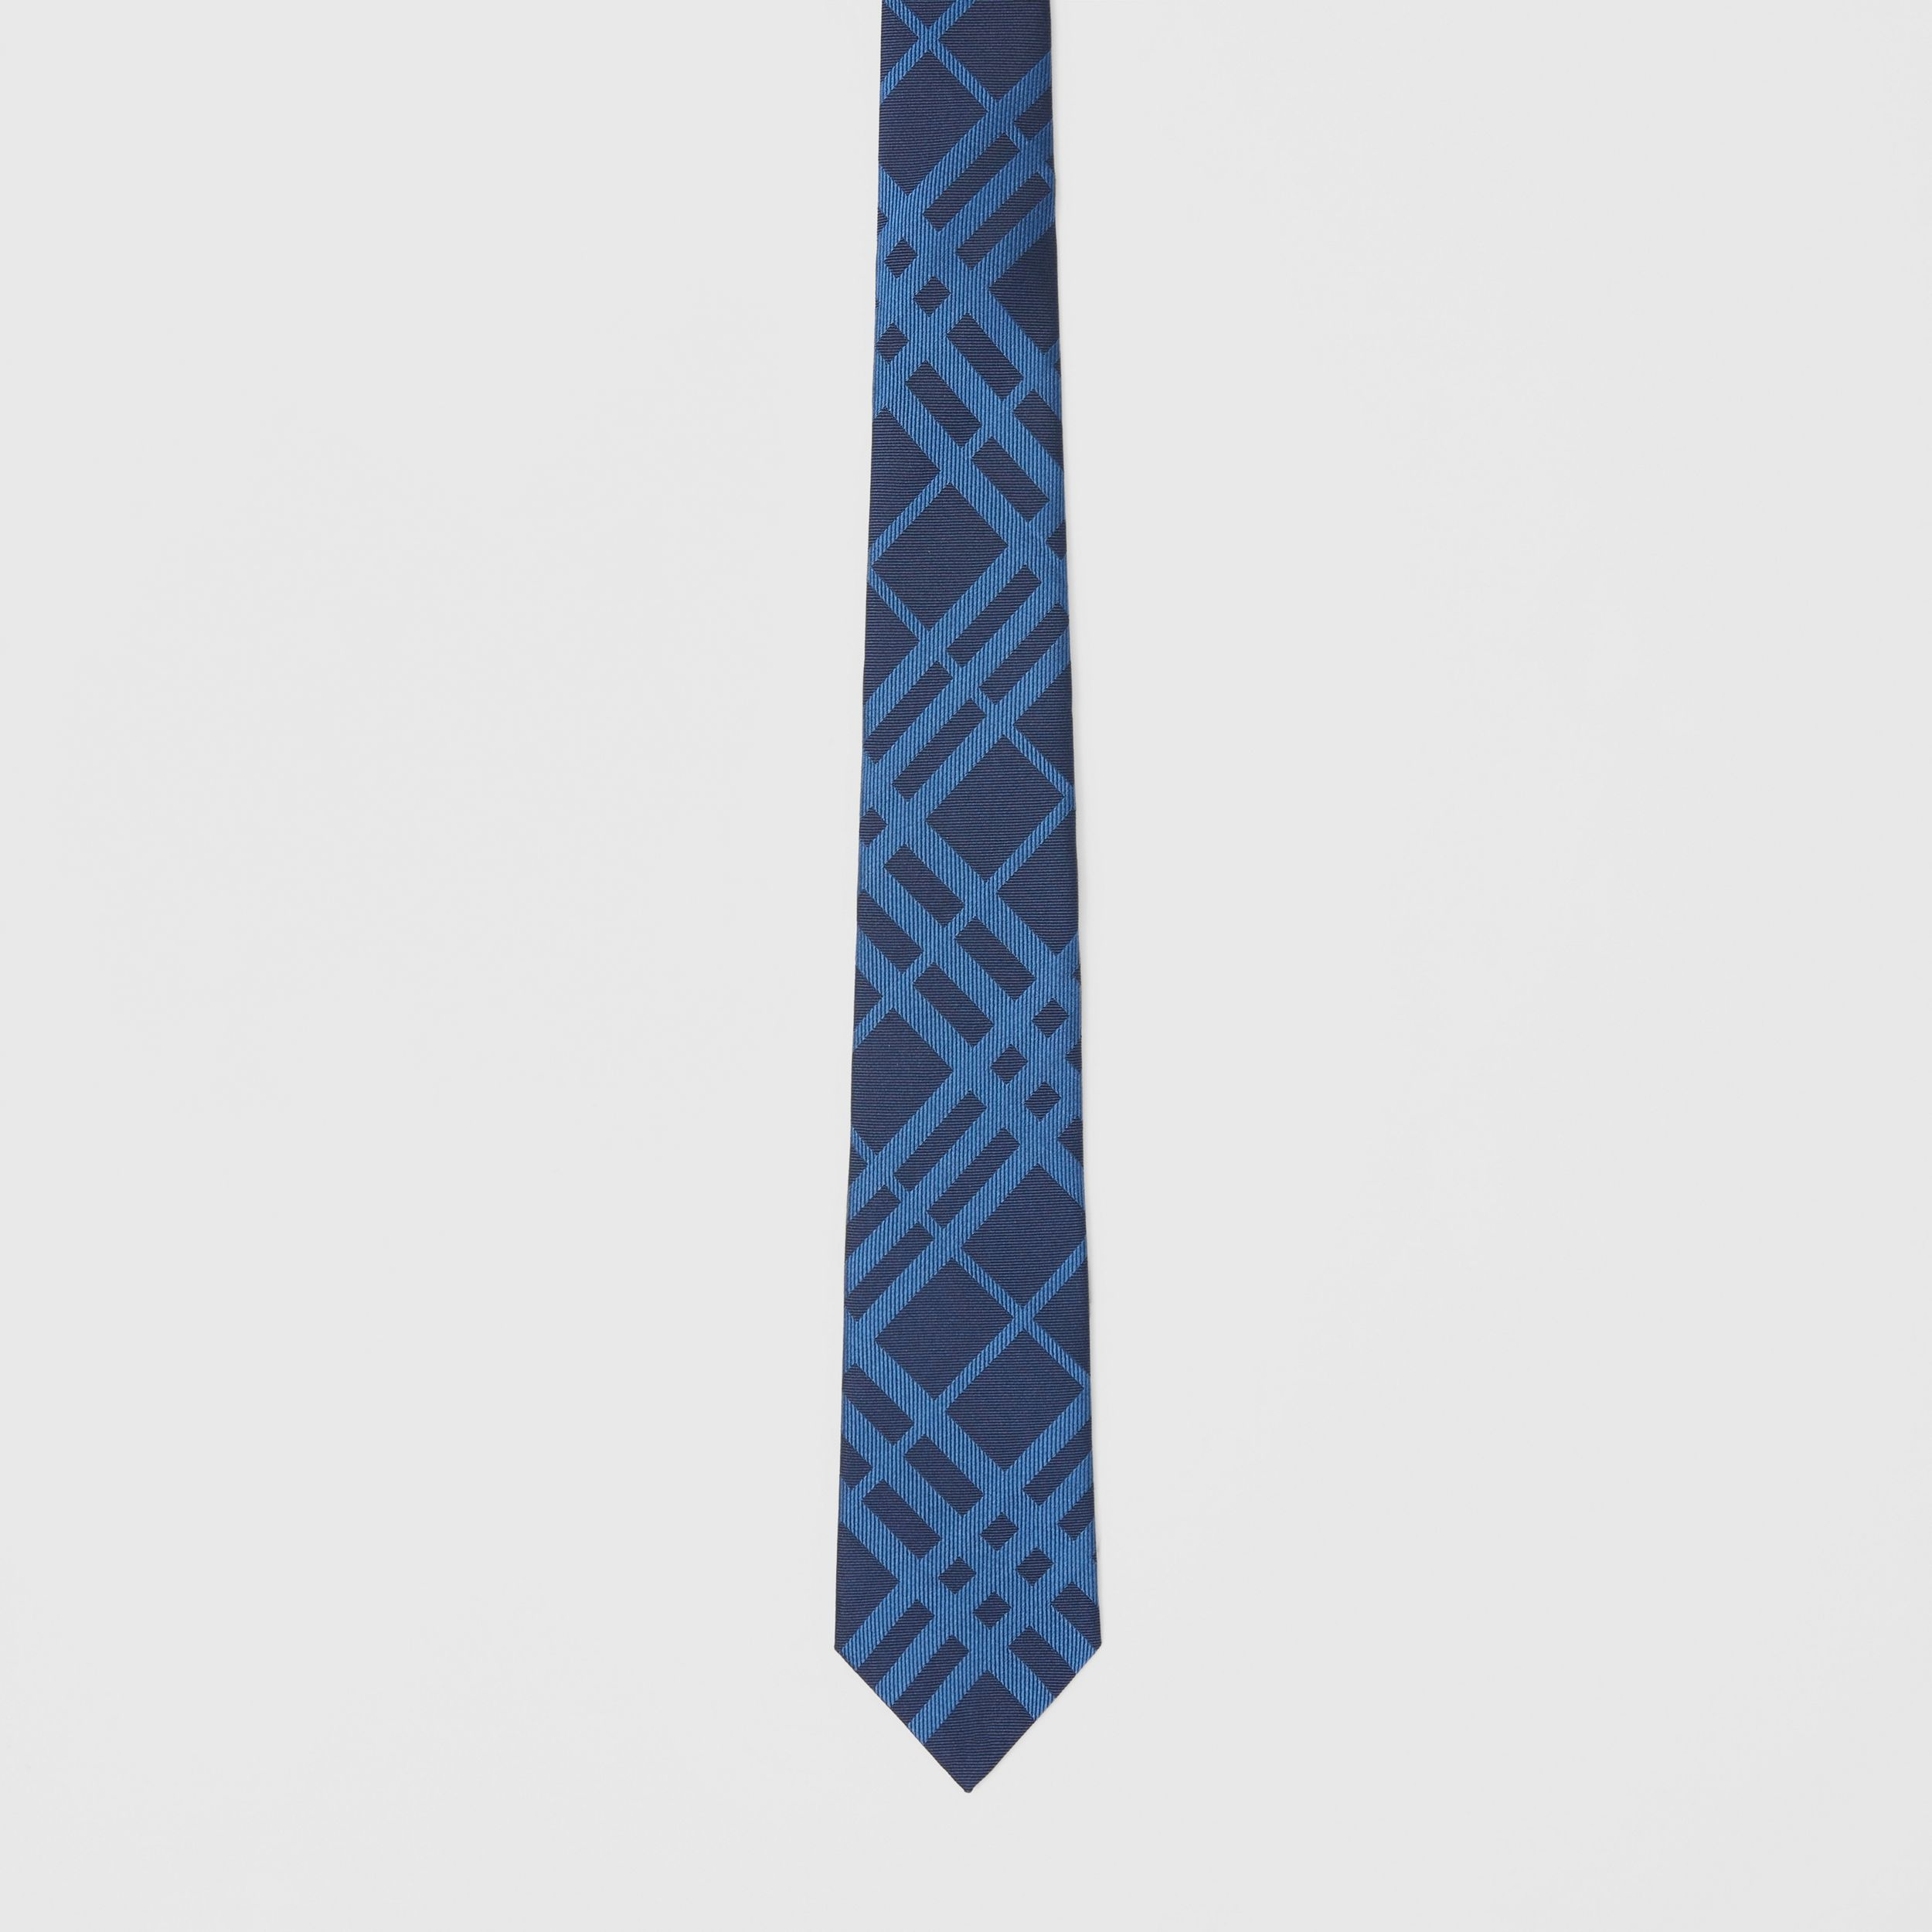 Classic Cut Check Silk Jacquard Tie in Ink Blue - Men | Burberry Hong Kong S.A.R. - 4